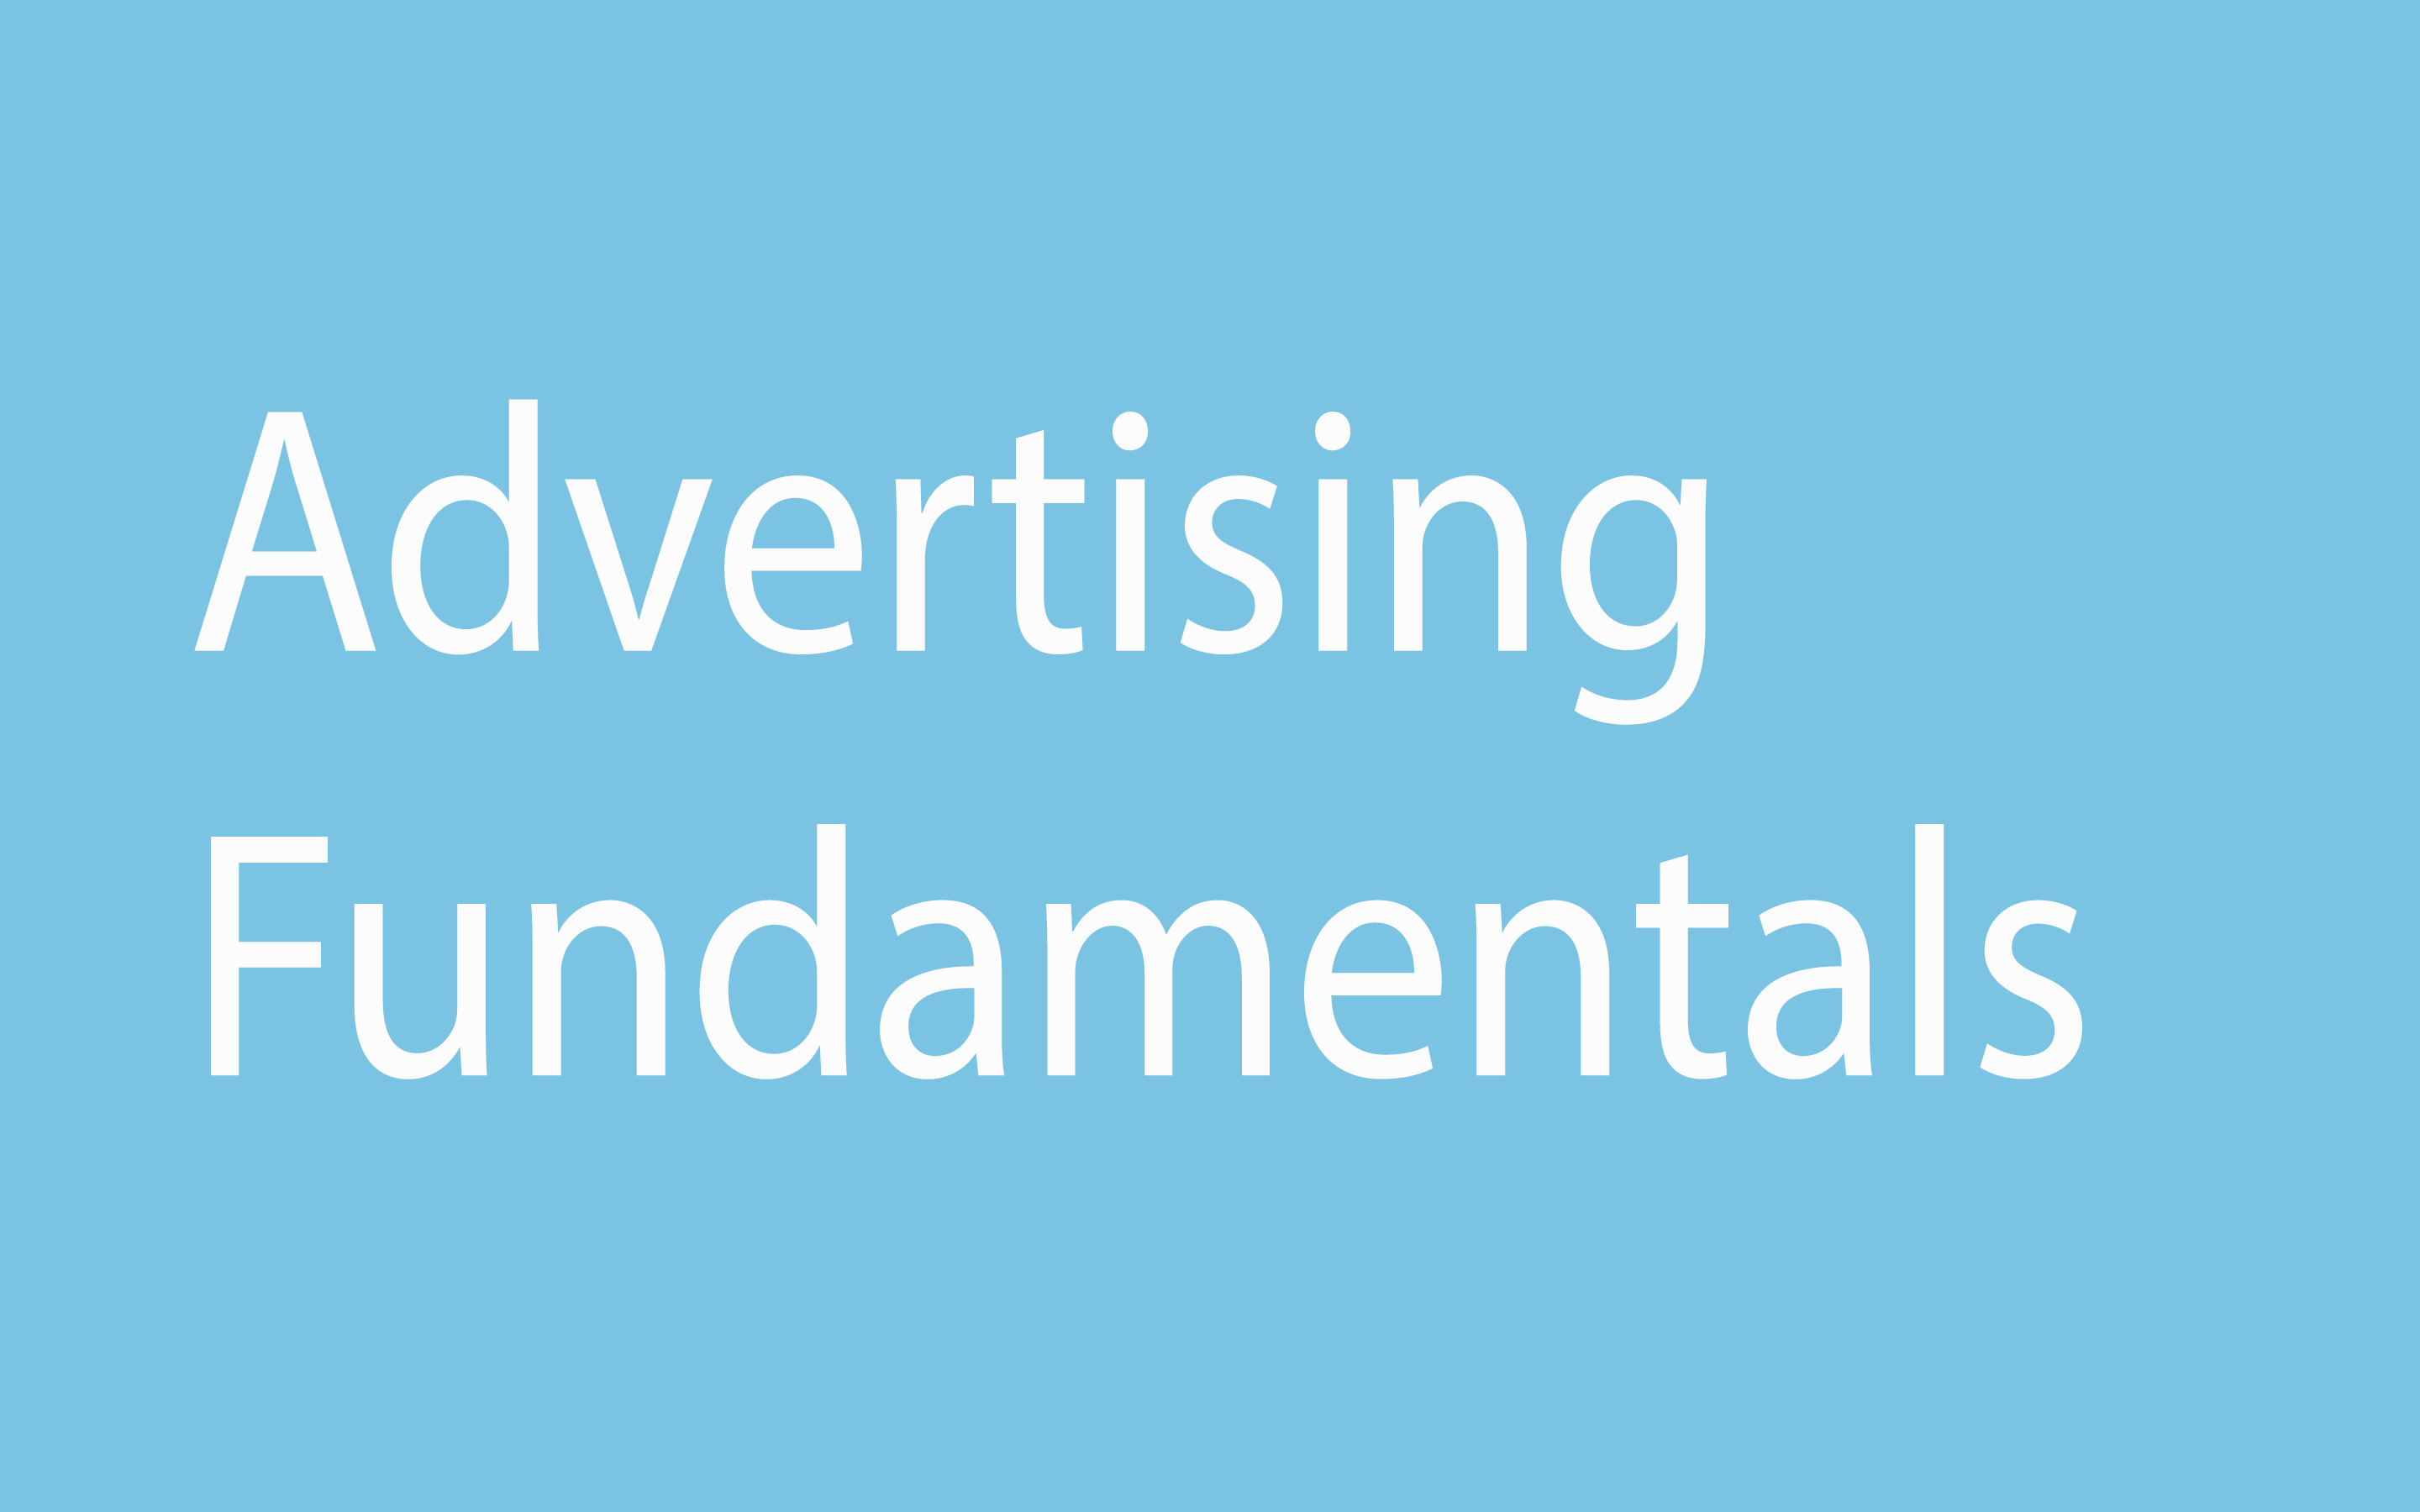 Advertising Fundamentals